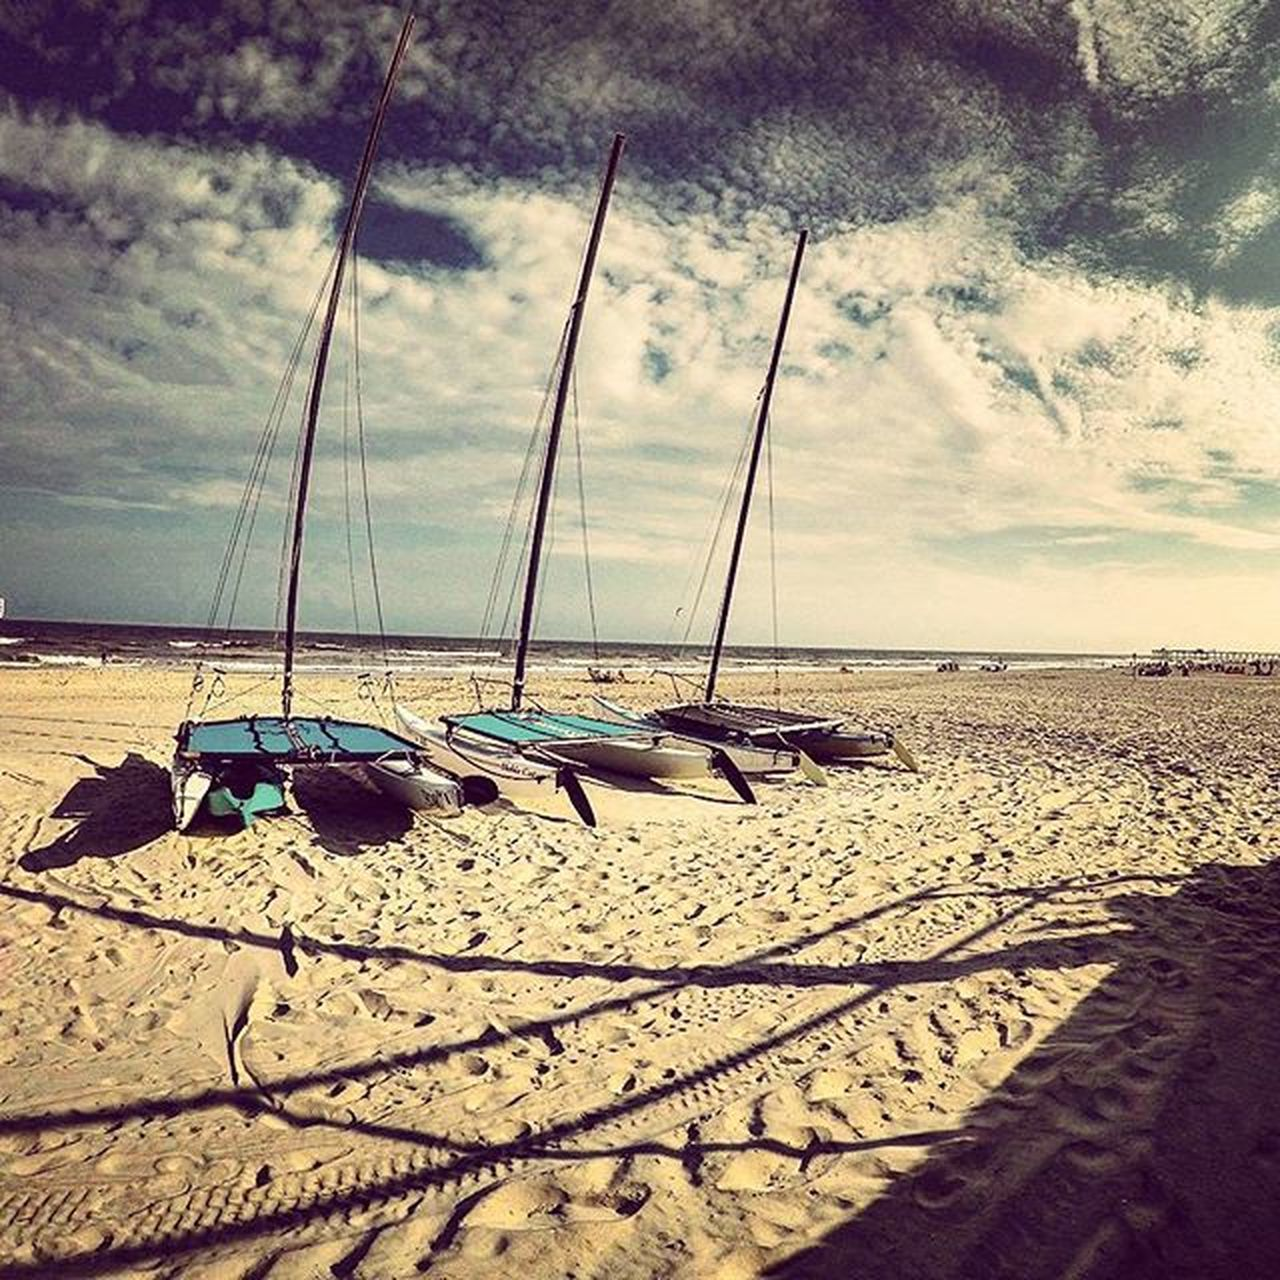 sand, beach, sea, shore, sky, water, cloud - sky, horizon over water, nature, scenics, beauty in nature, tranquility, tranquil scene, outdoors, no people, day, nautical vessel, moored